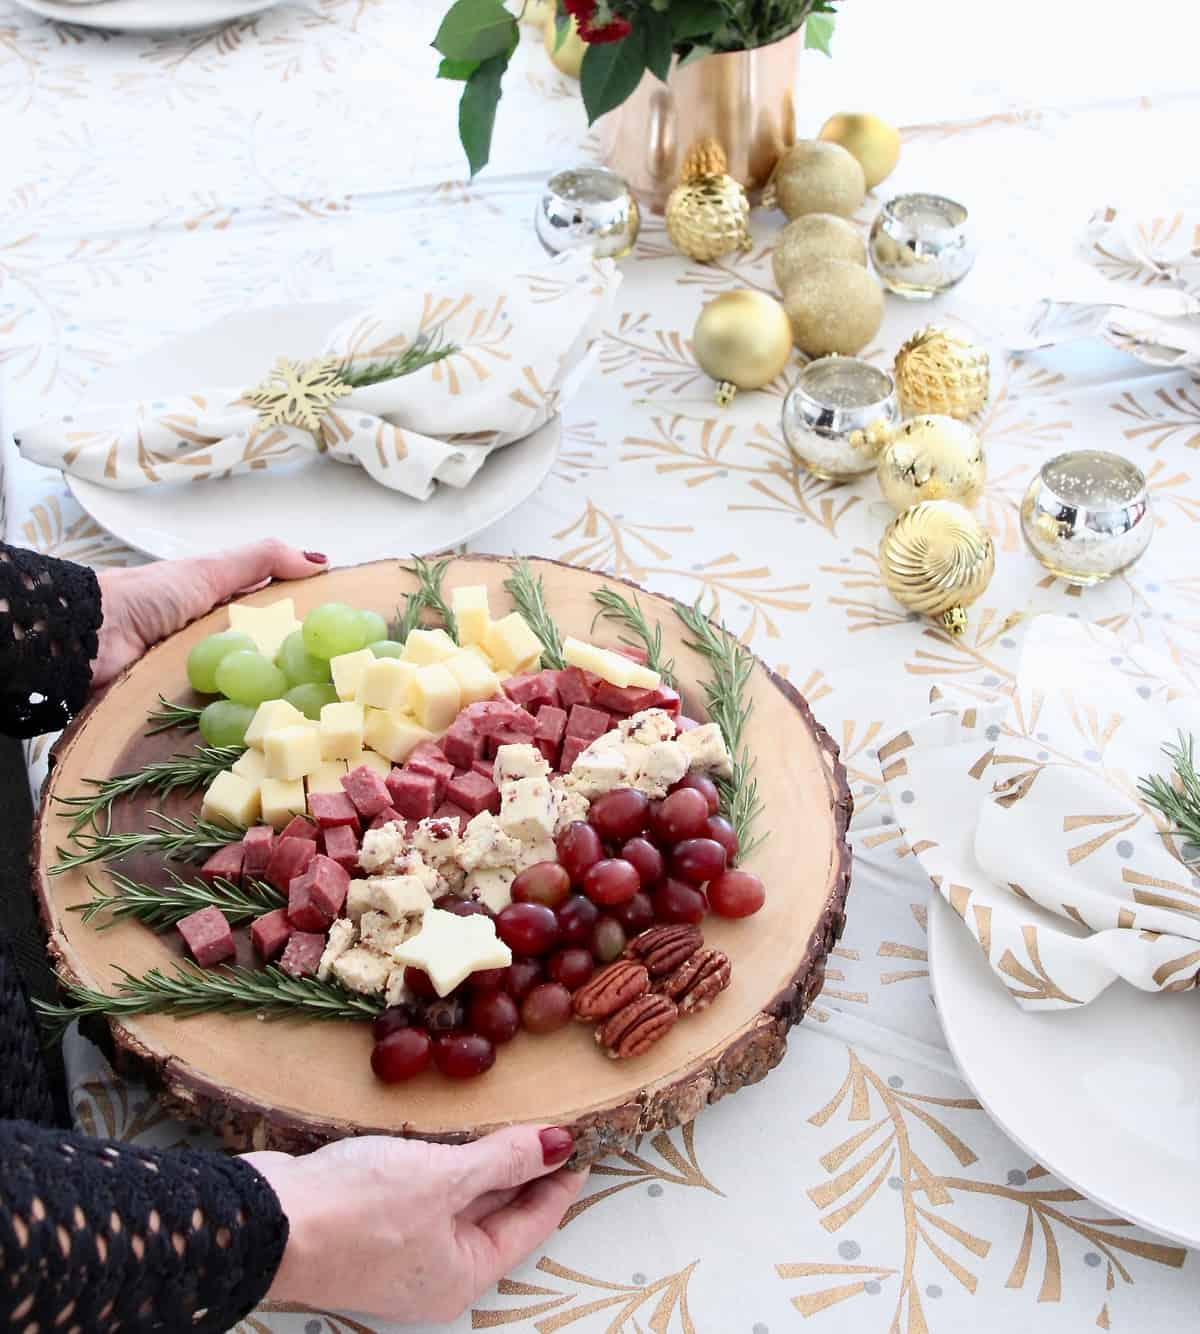 Hands holding Christmas tree holiday cheese board